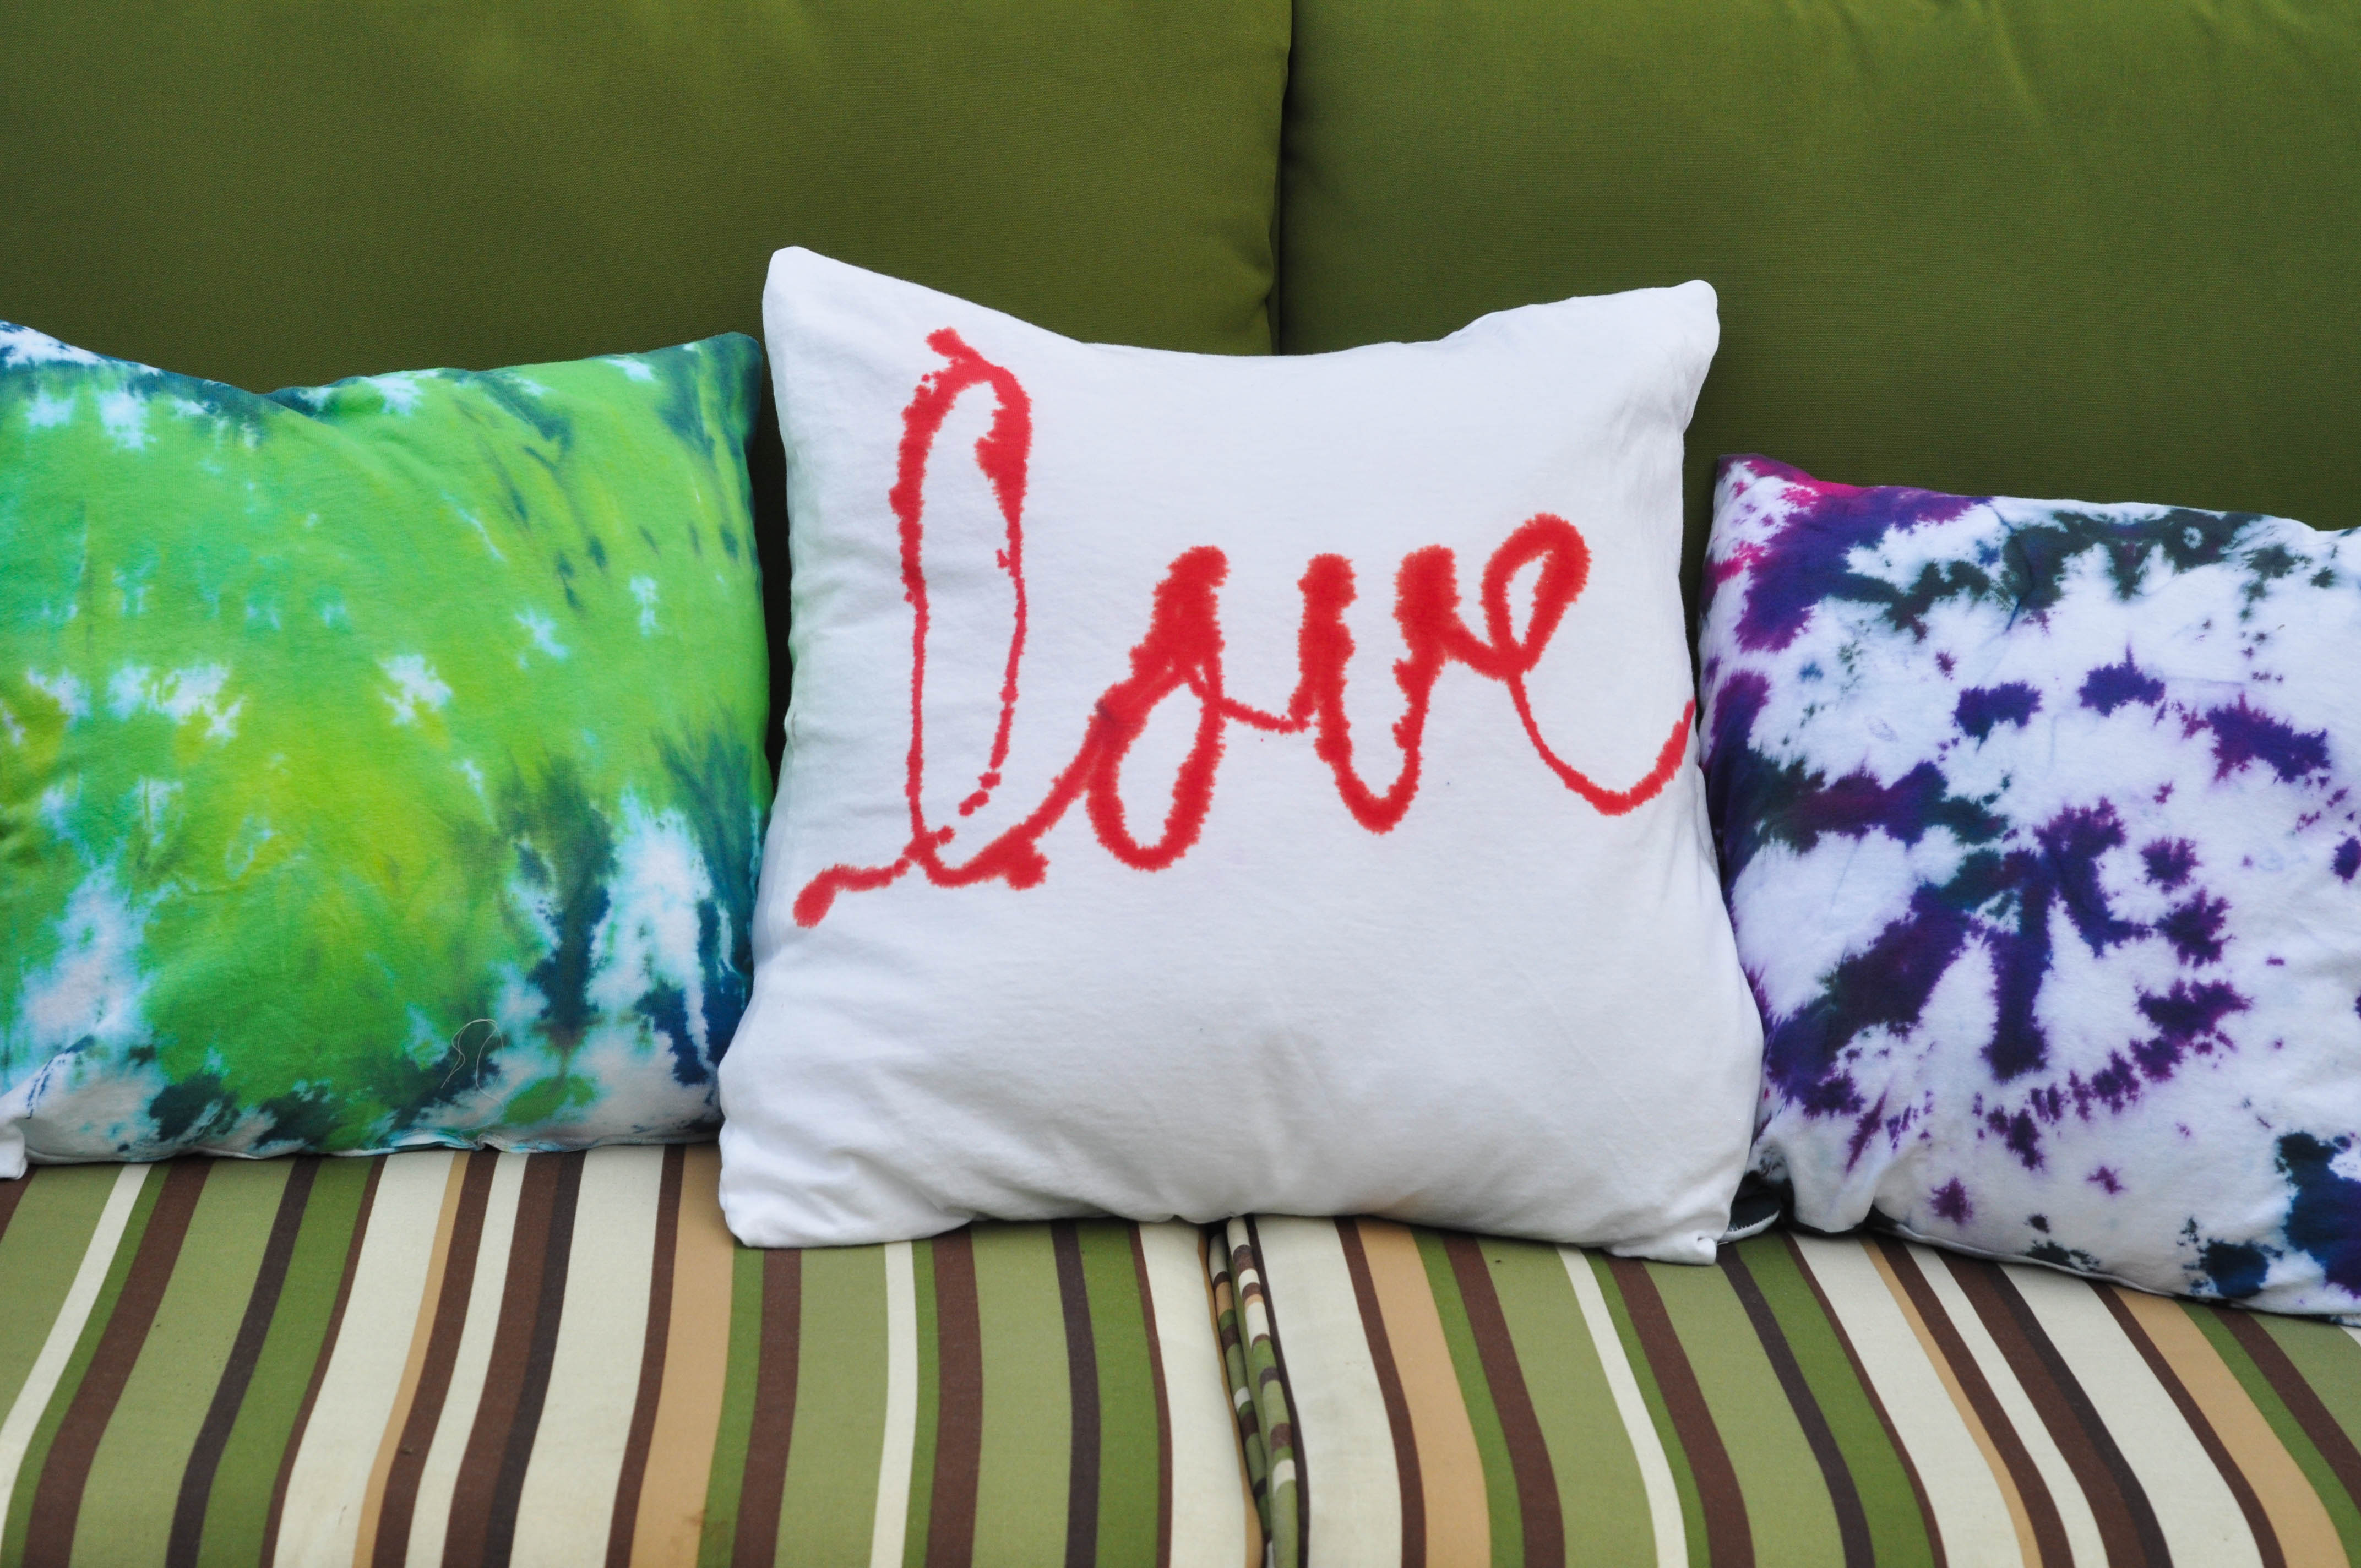 Tie dyed pillows add some fun to the patio suburble tie dye t shirt pillowstutorial suburble 1 of 1 baditri Gallery